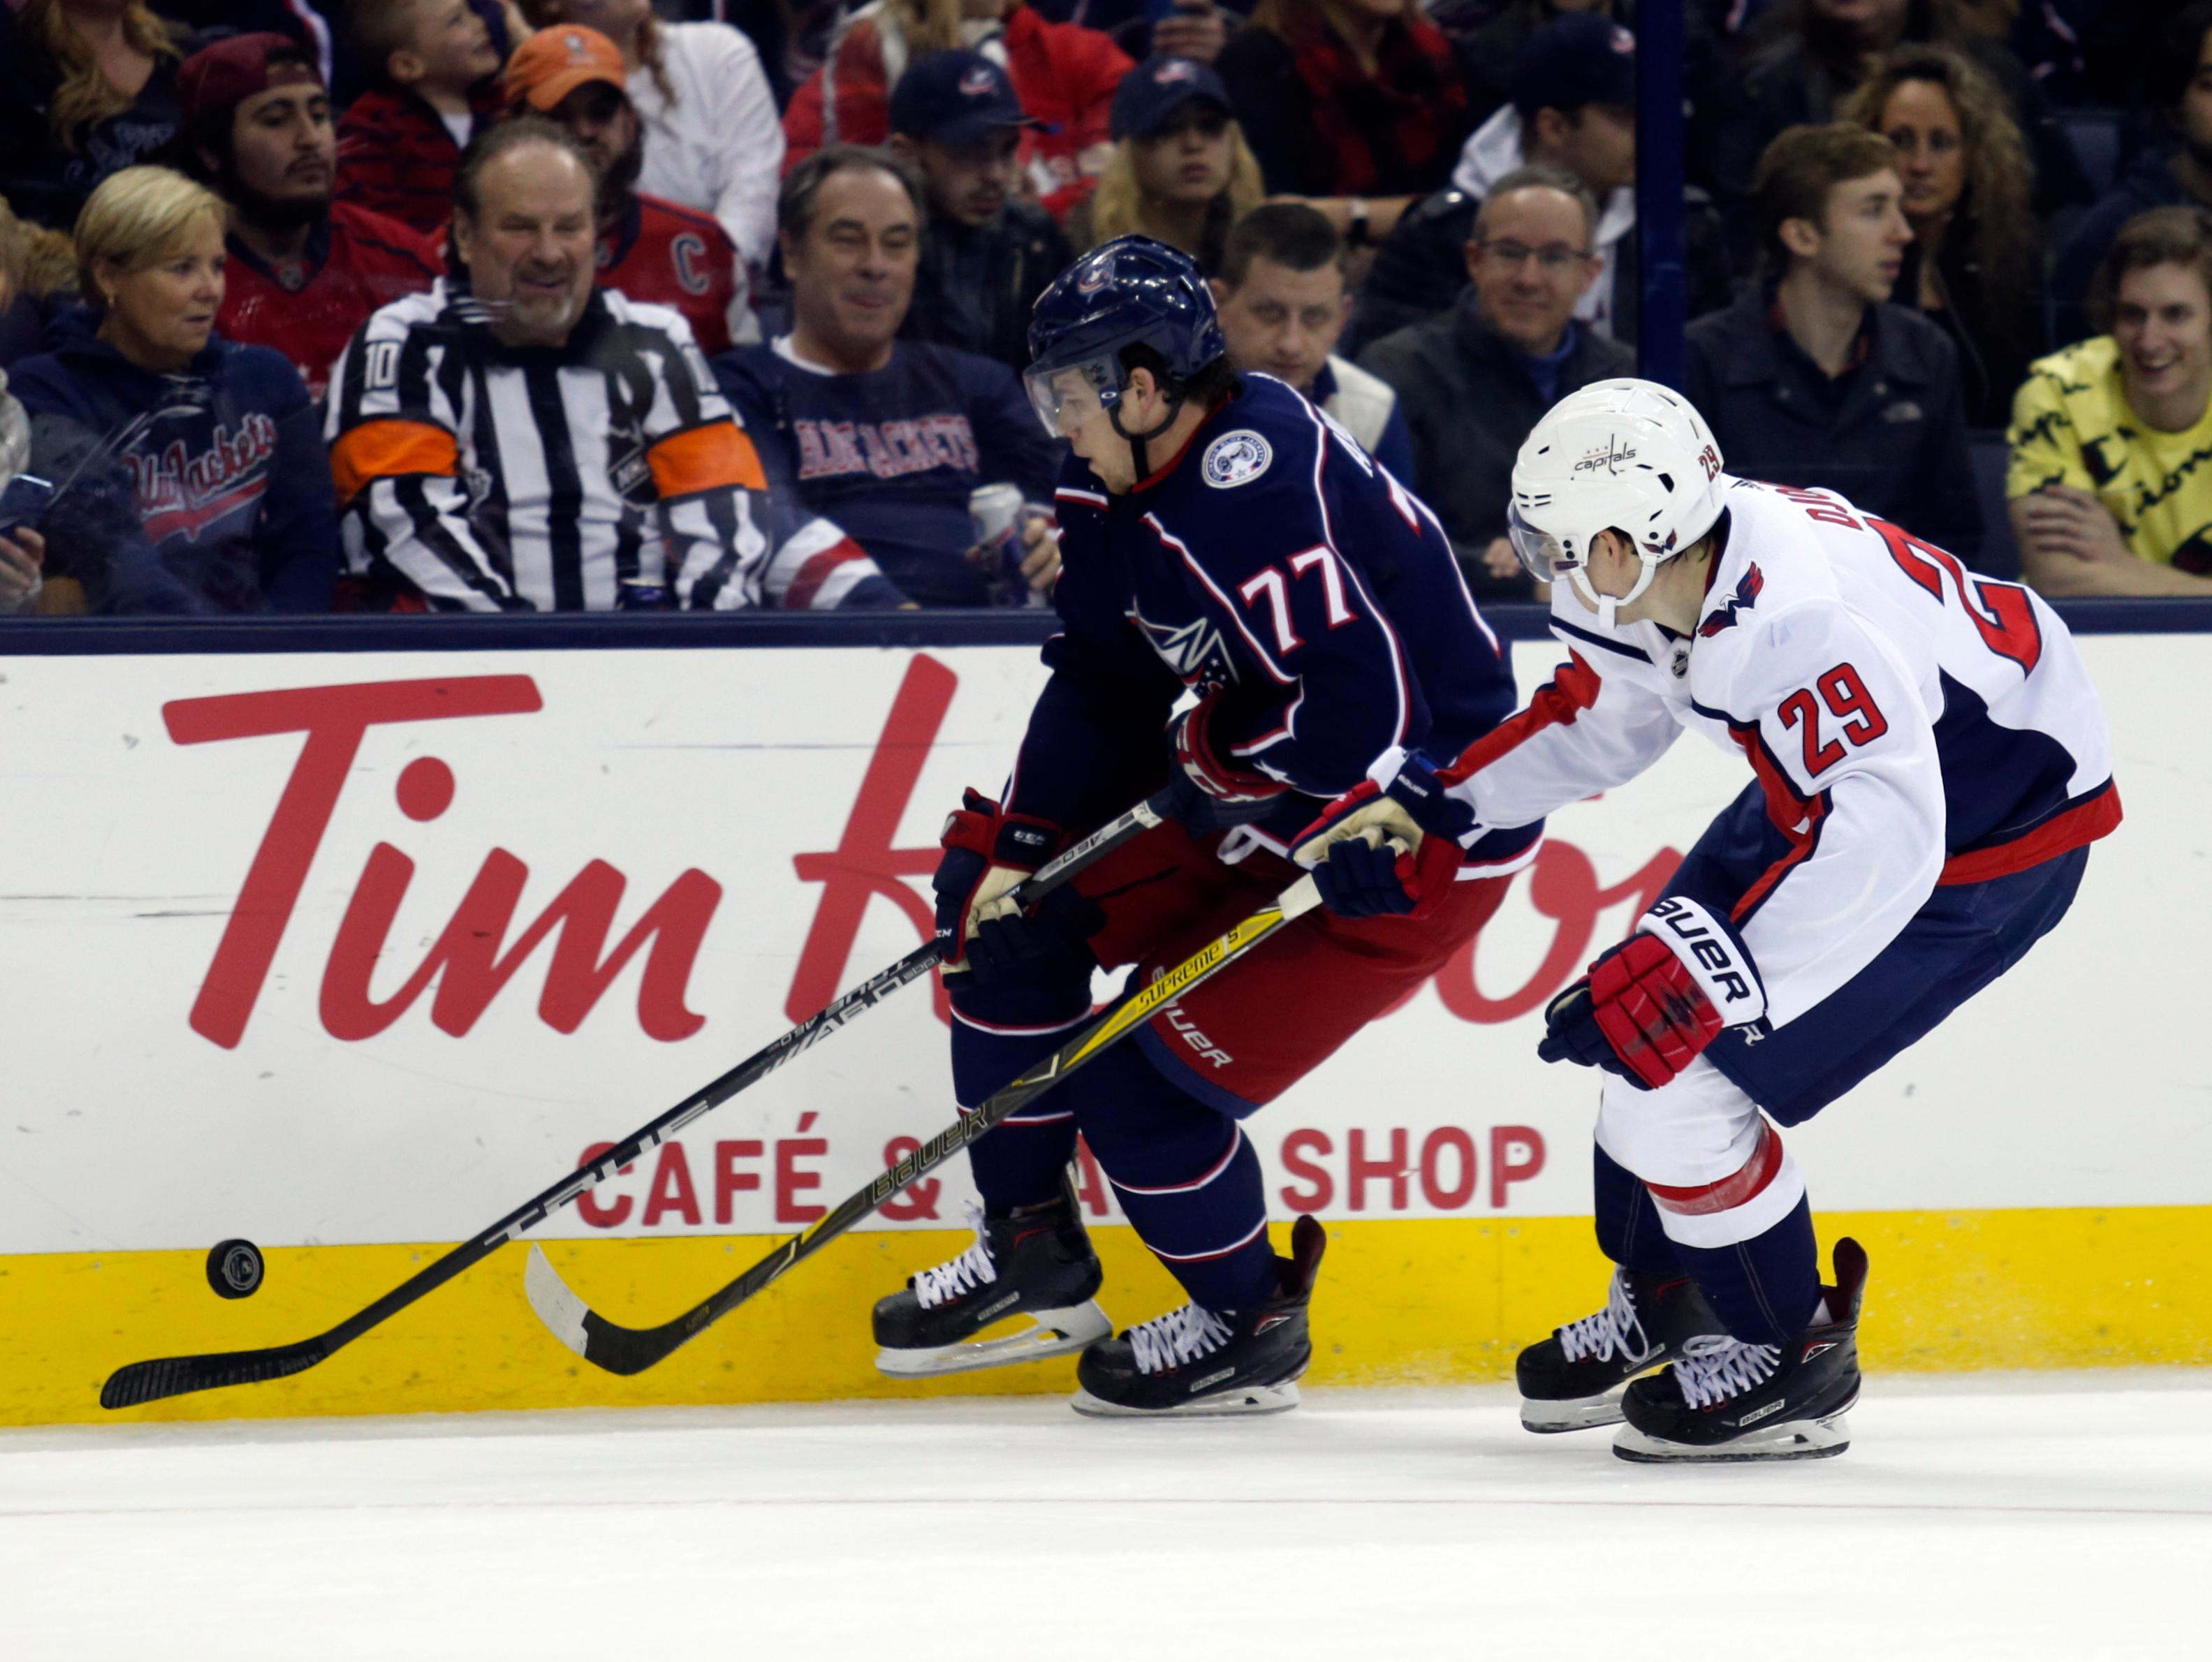 Columbus Blue Jackets forward Josh Anderson, left, chases the puck against Washington Capitals defenseman Christian Djoos, of Sweden, during the second period of an NHL hockey game in Columbus, Ohio, Monday, Feb. 26, 2018. (AP Photo/Paul Vernon)